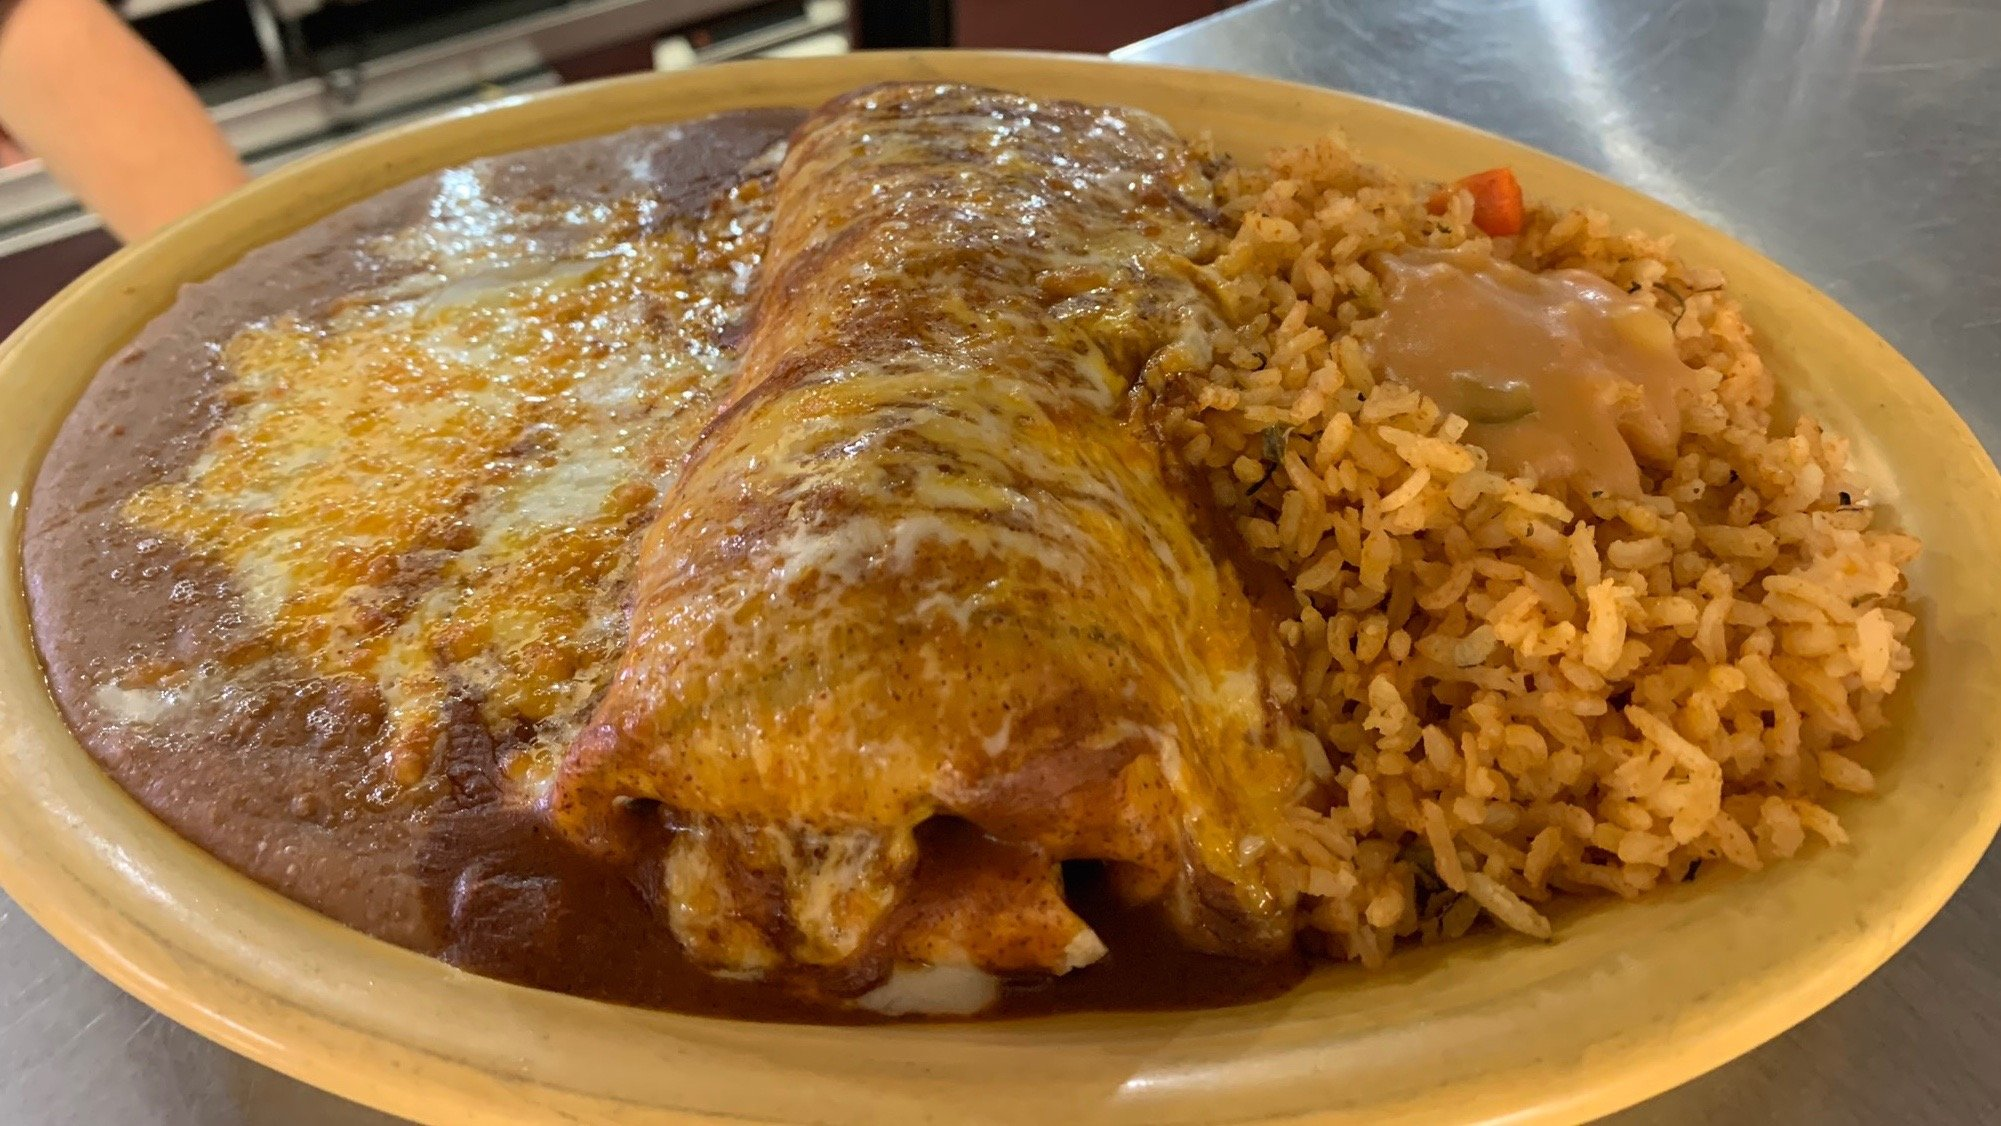 Beef burrito at Panco and Lefty's